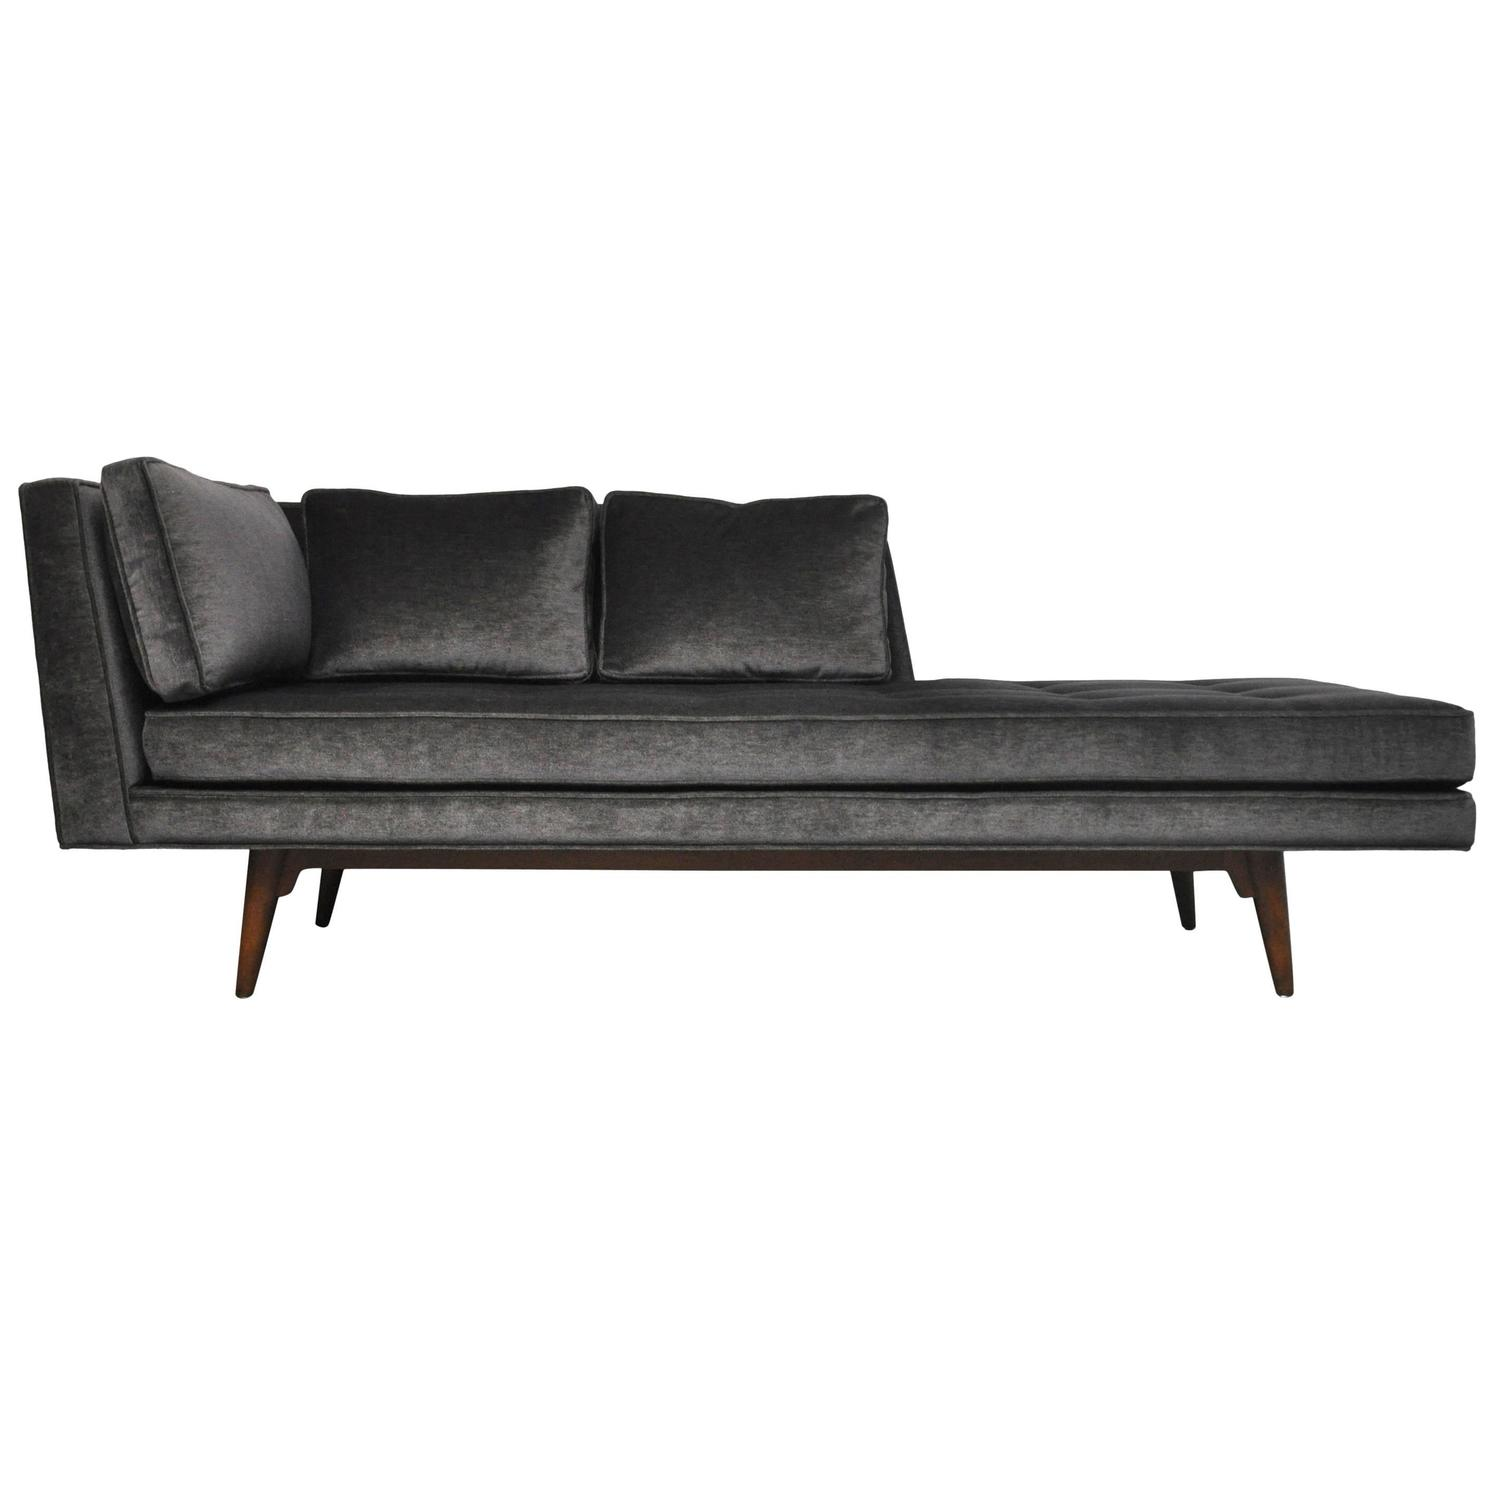 Amazing 30  Left Arm Chaise Lounge